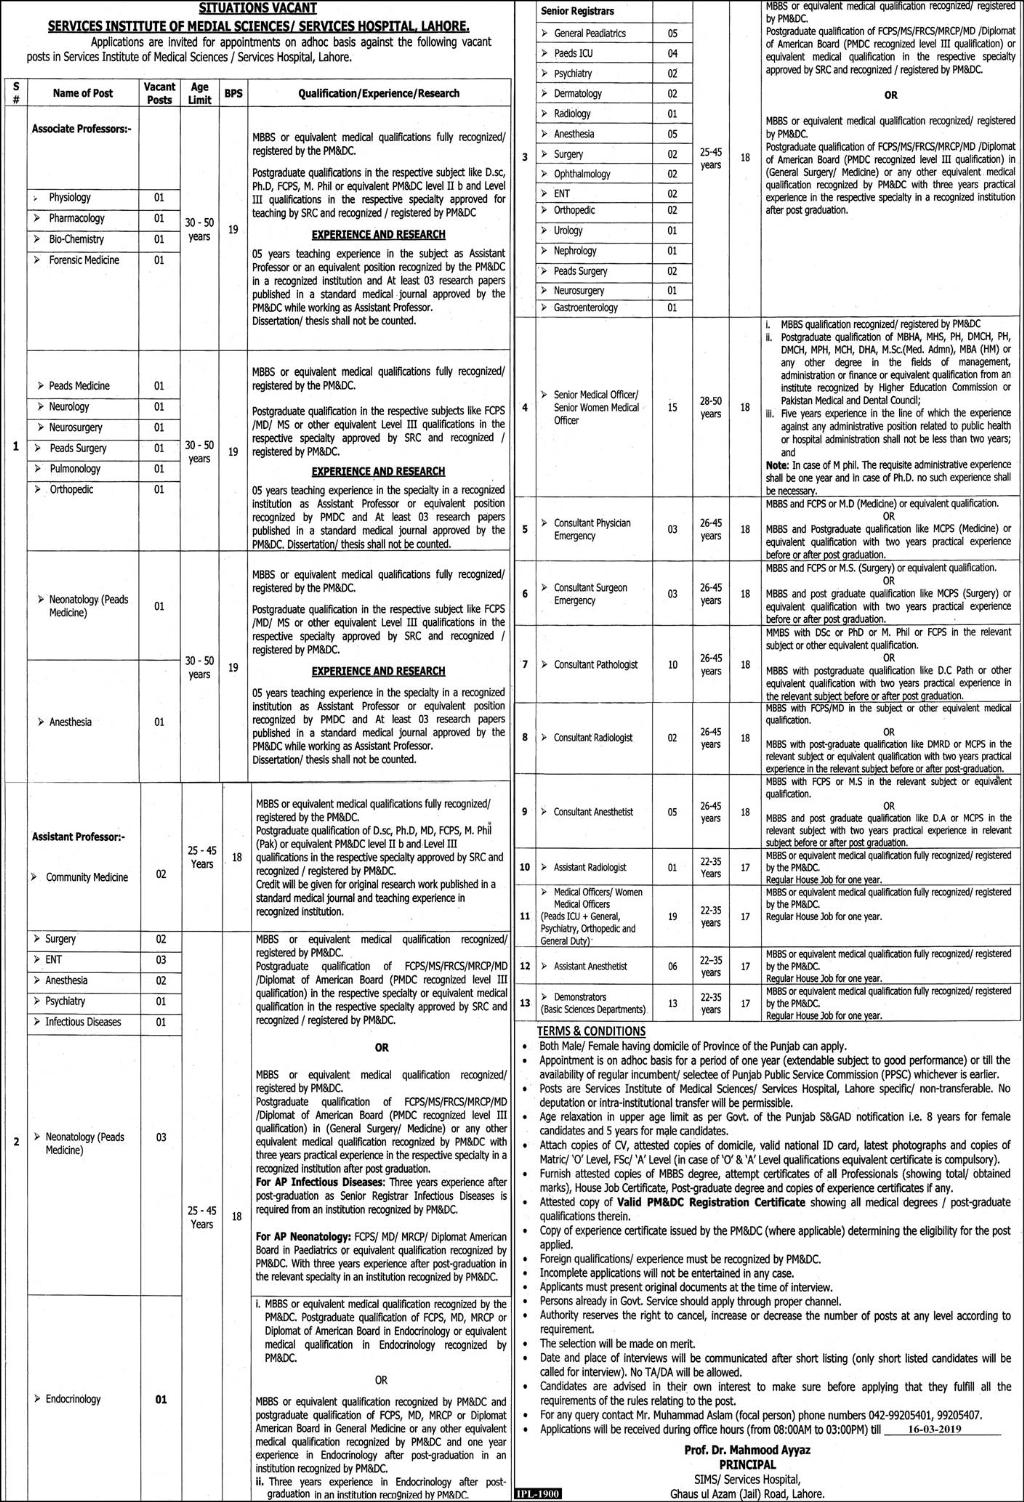 Services Institute Of Medical Science Service Hospital Lahore Jobs 2 Mar 2019